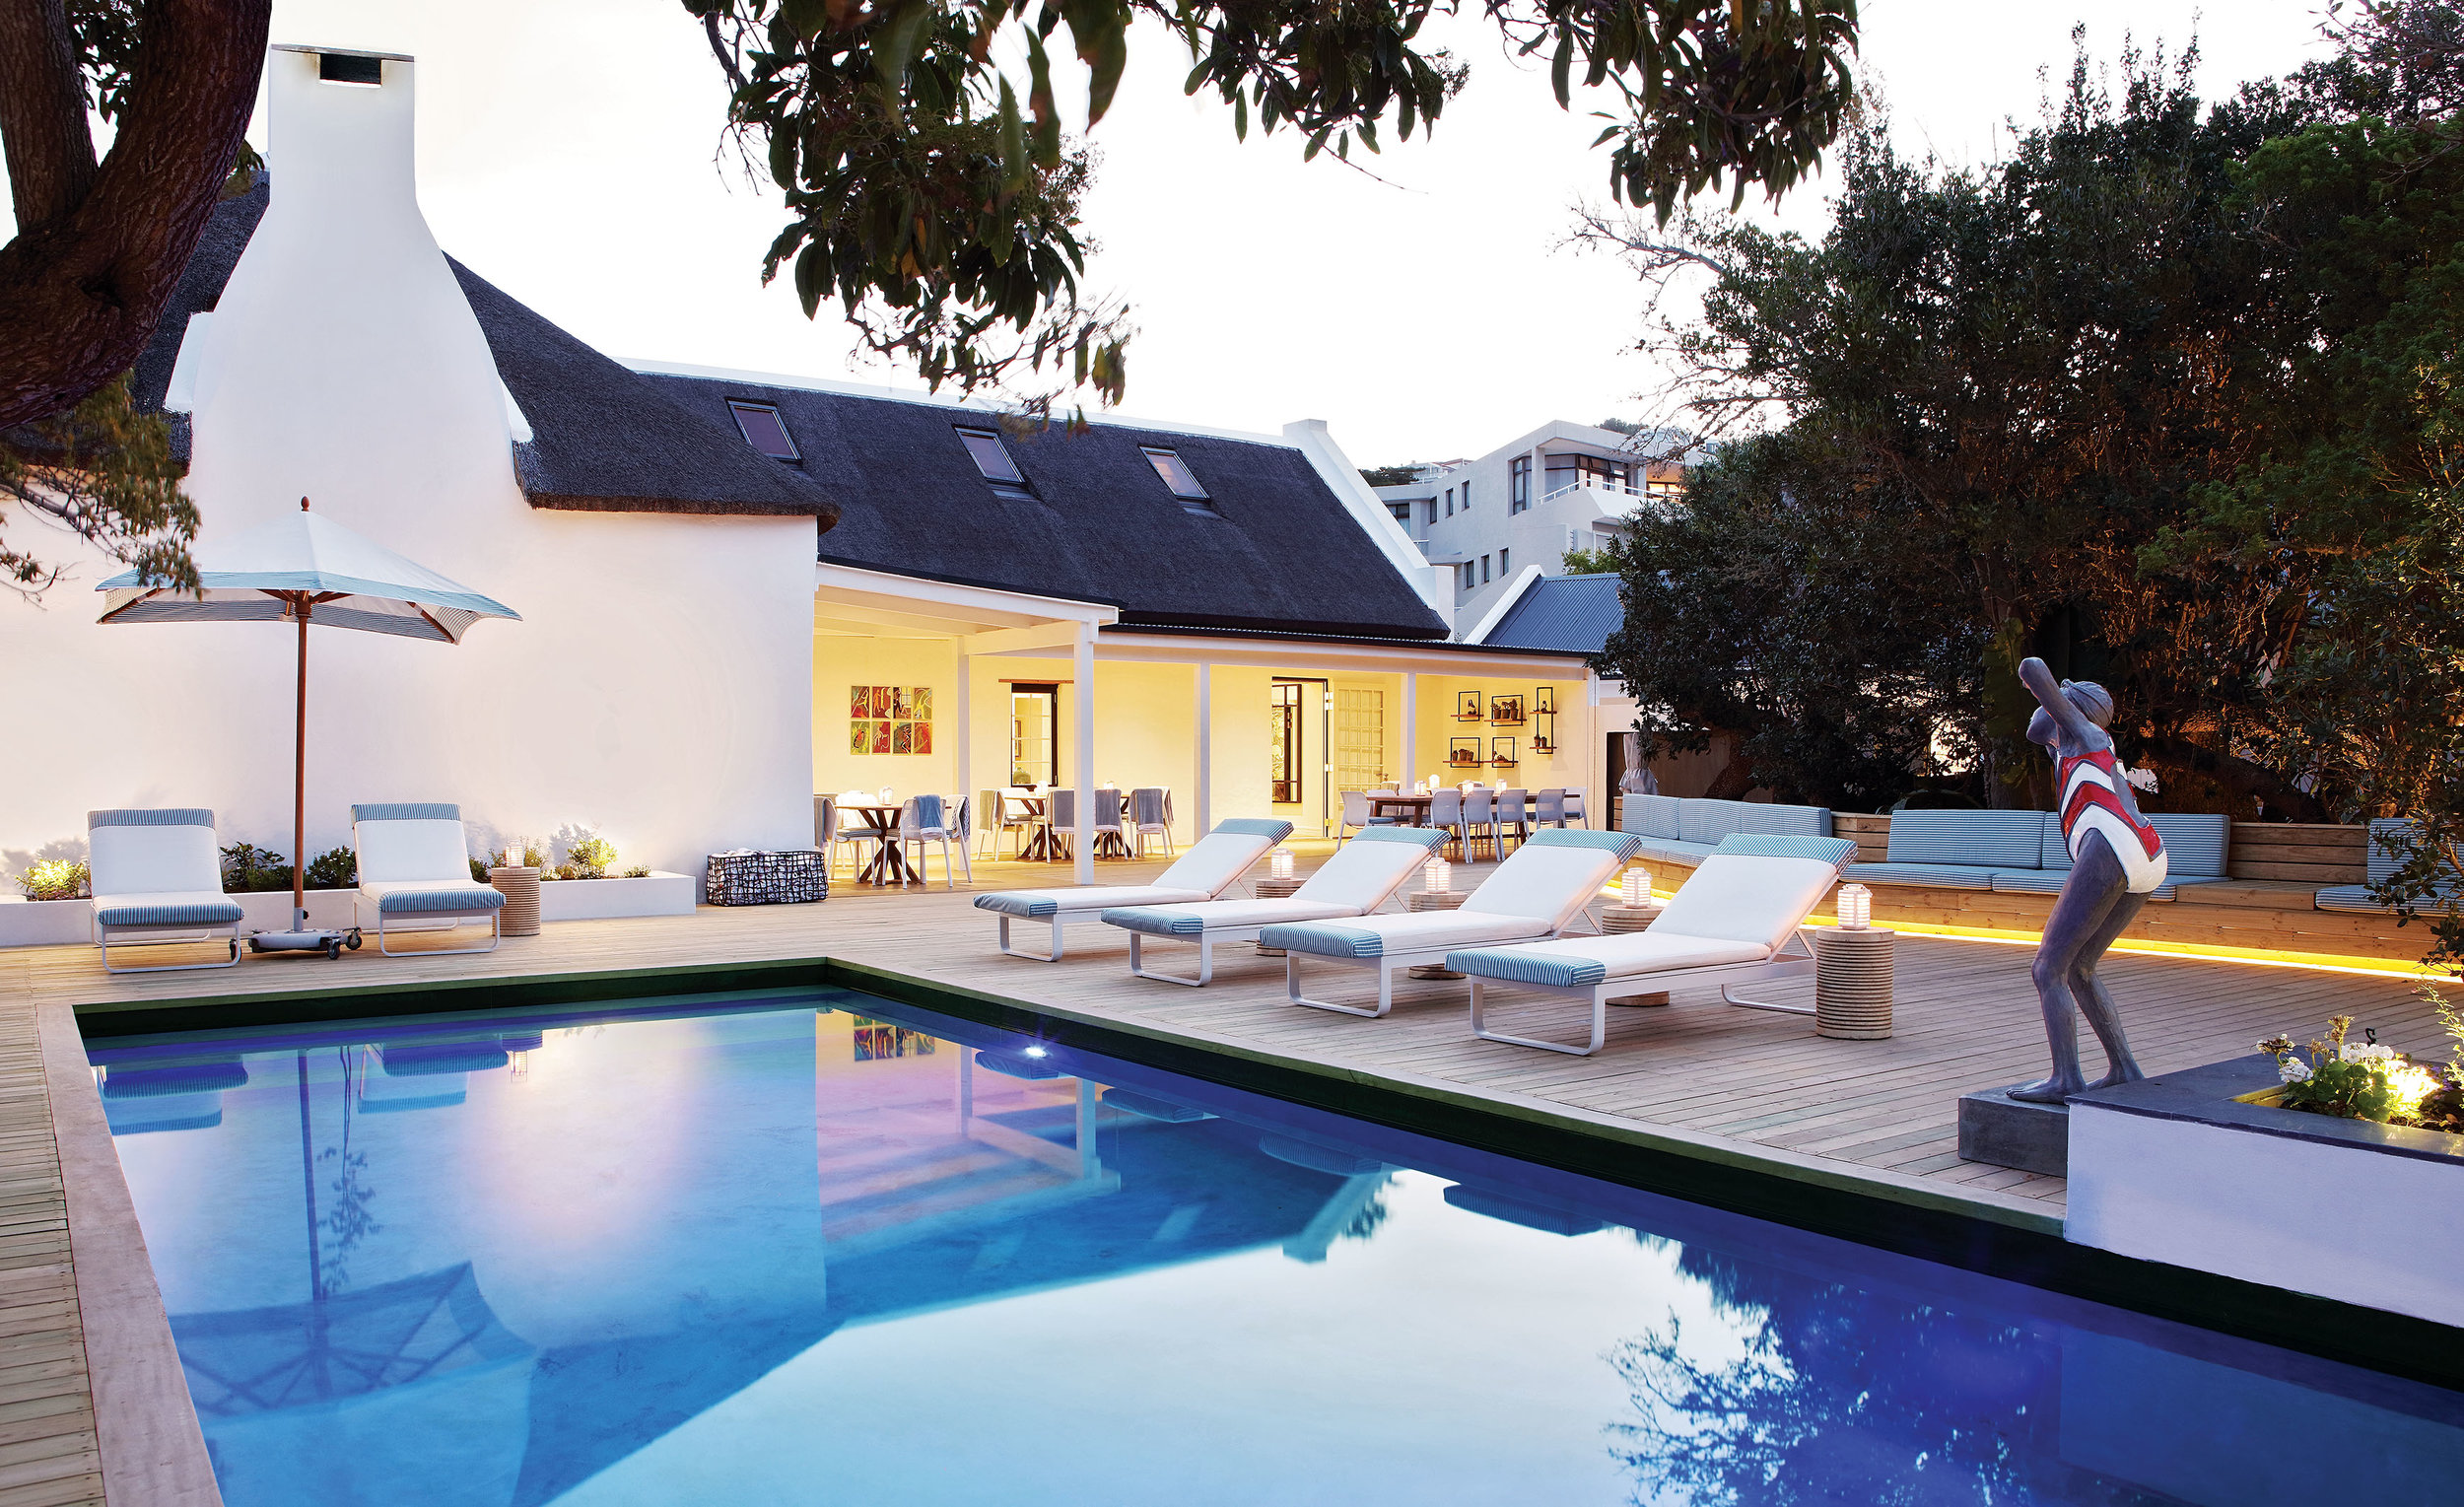 The Old Rectory in Plettenberg Bay - pool